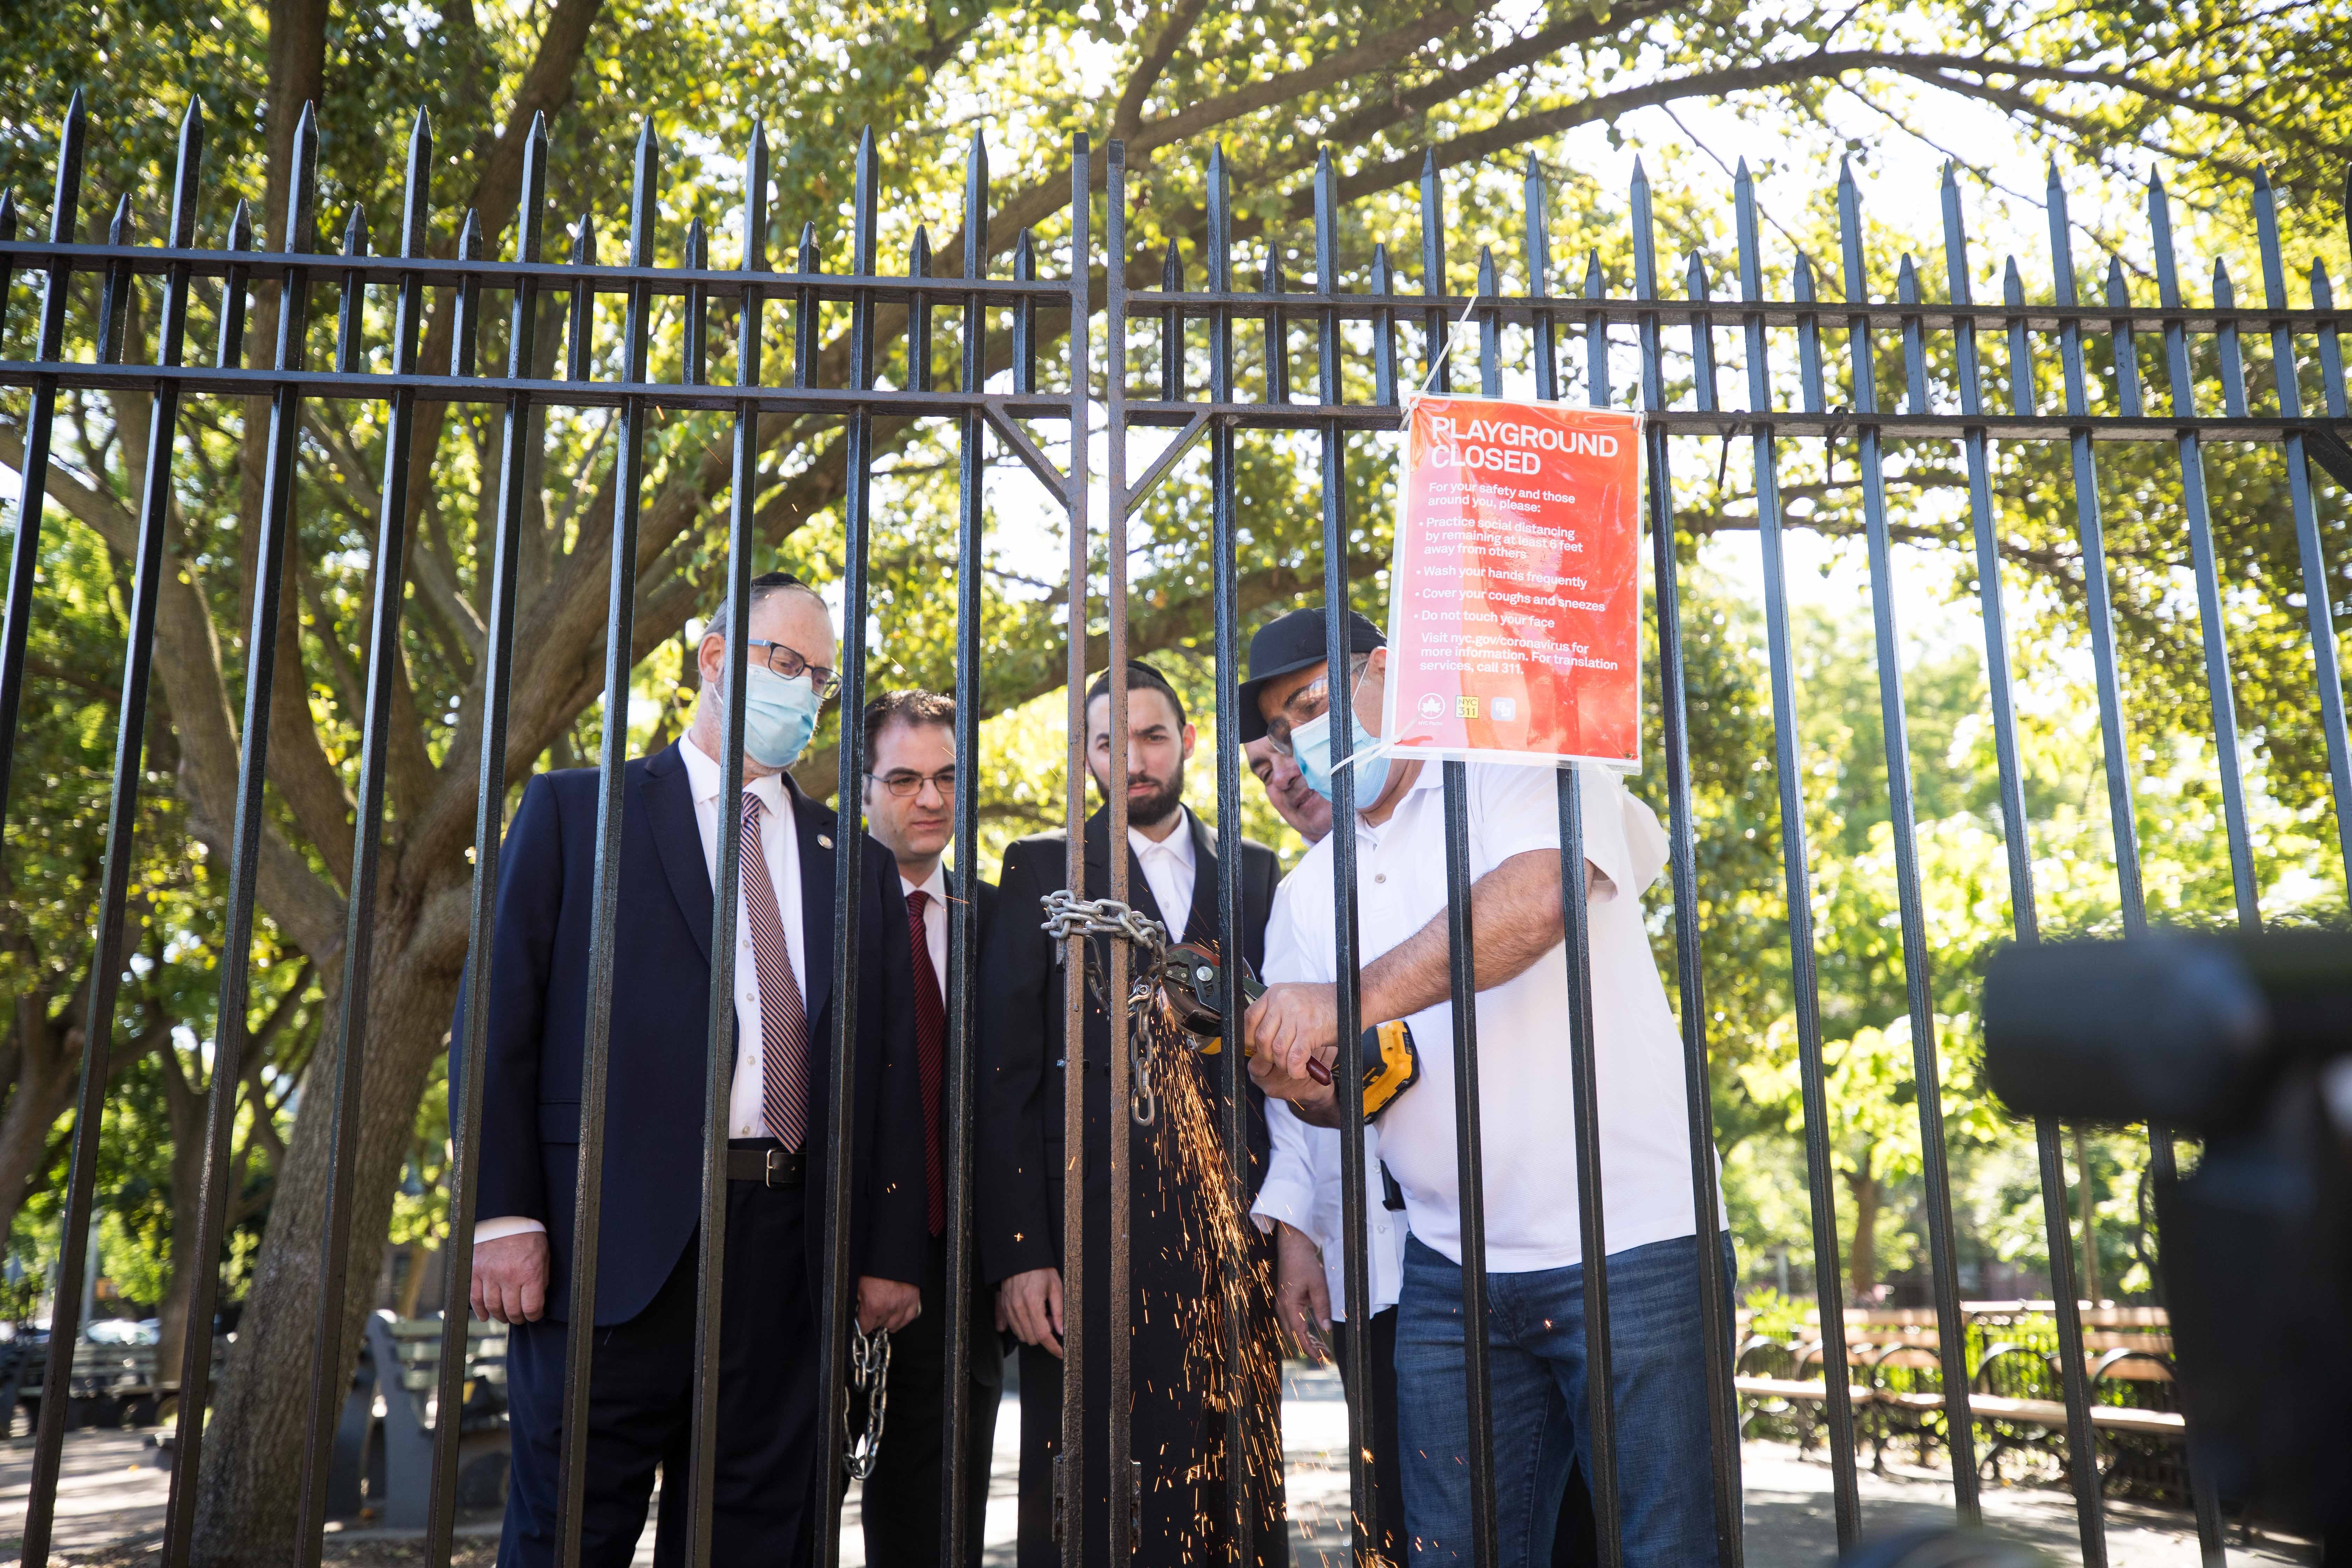 Councilman Kalman Yeger, Assemblyman Simcha Eichenstein, Senator Simcha Felder and an unidentified worker cut the lock at a Brooklyn playground.